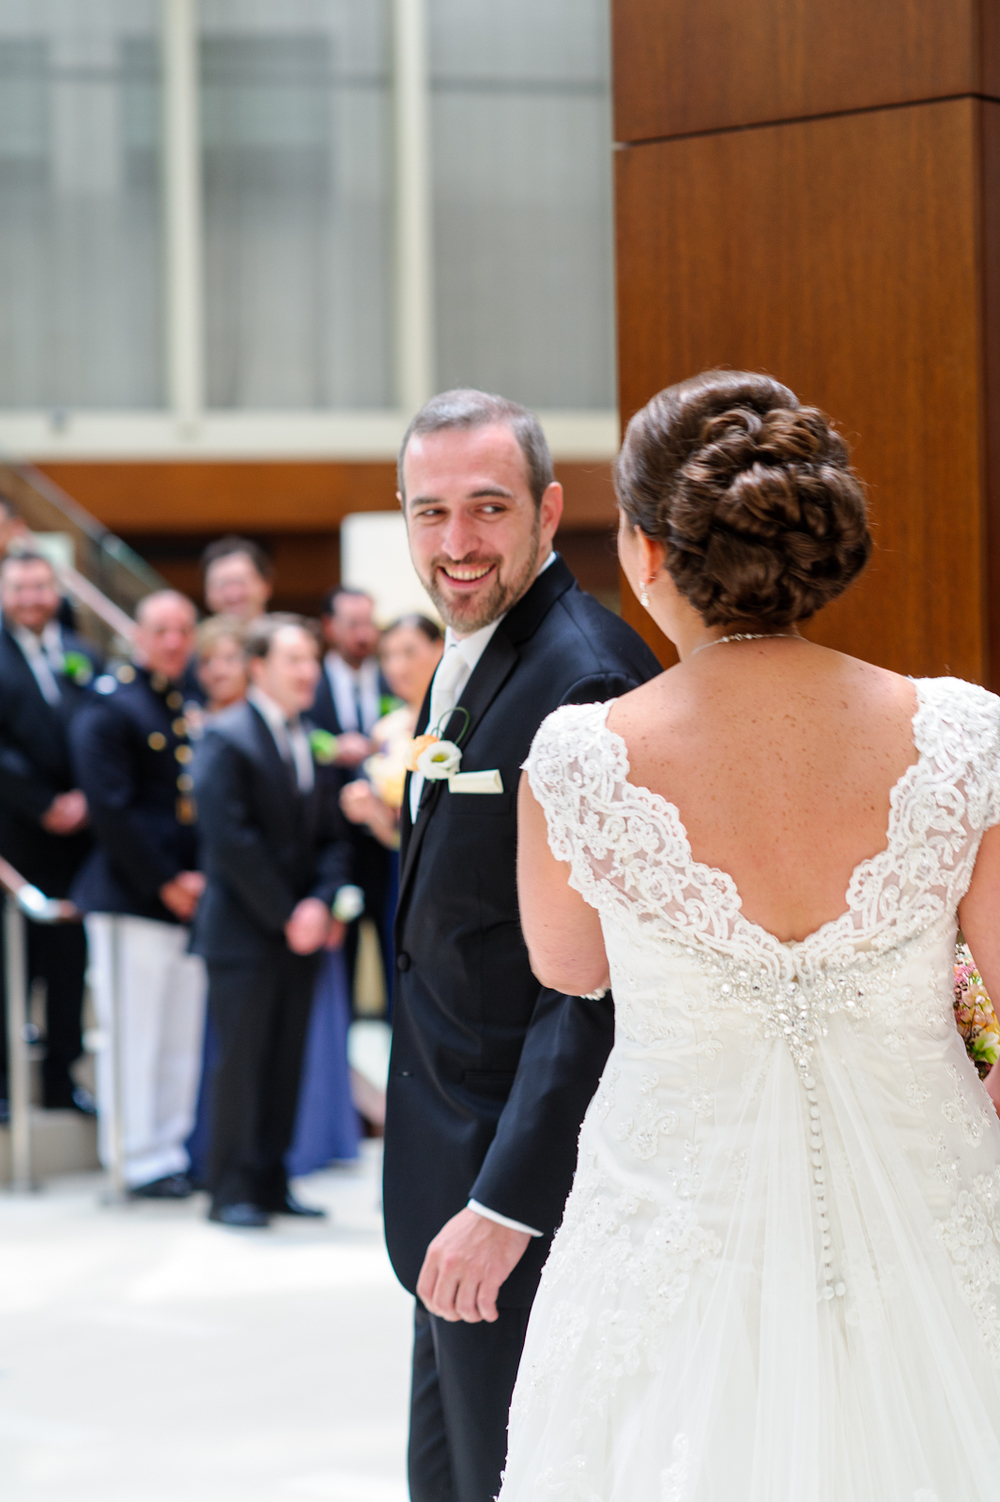 wedding photography dc photographer - district of columbia photography weddingphoto 2012_-14.jpg